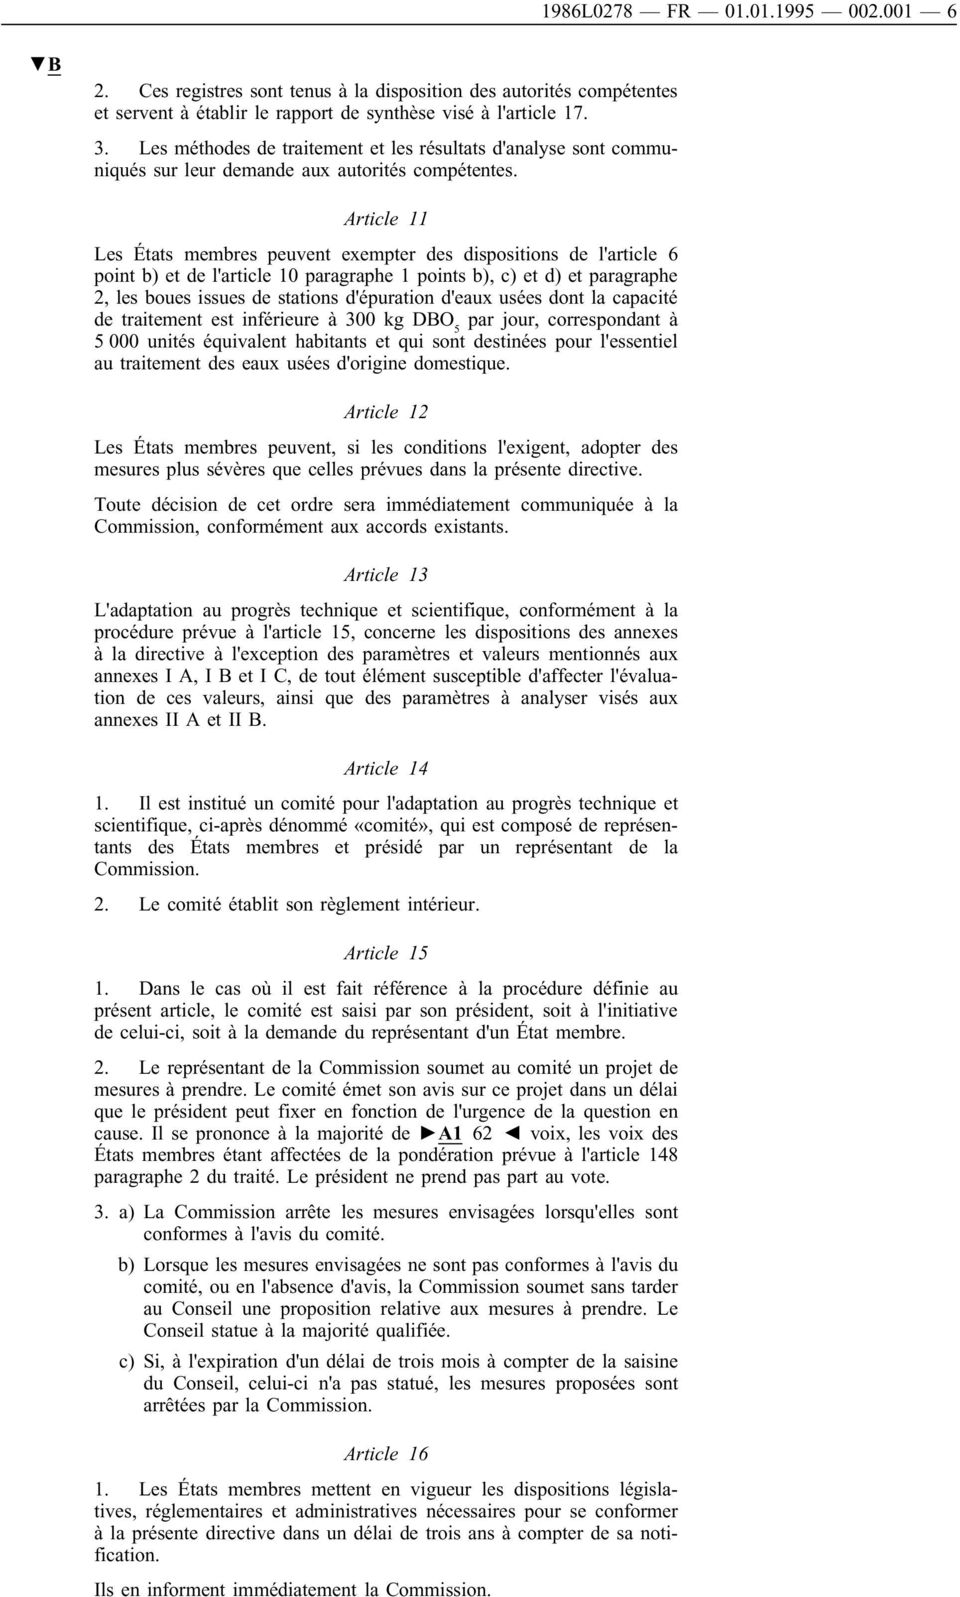 Article 11 Les États membres peuvent exempter des dispositions de l'article 6 pointb) etde l'article 10 paragraphe 1 points b), c) etd) etparagraphe 2, les boues issues de stations d'épuration d'eaux